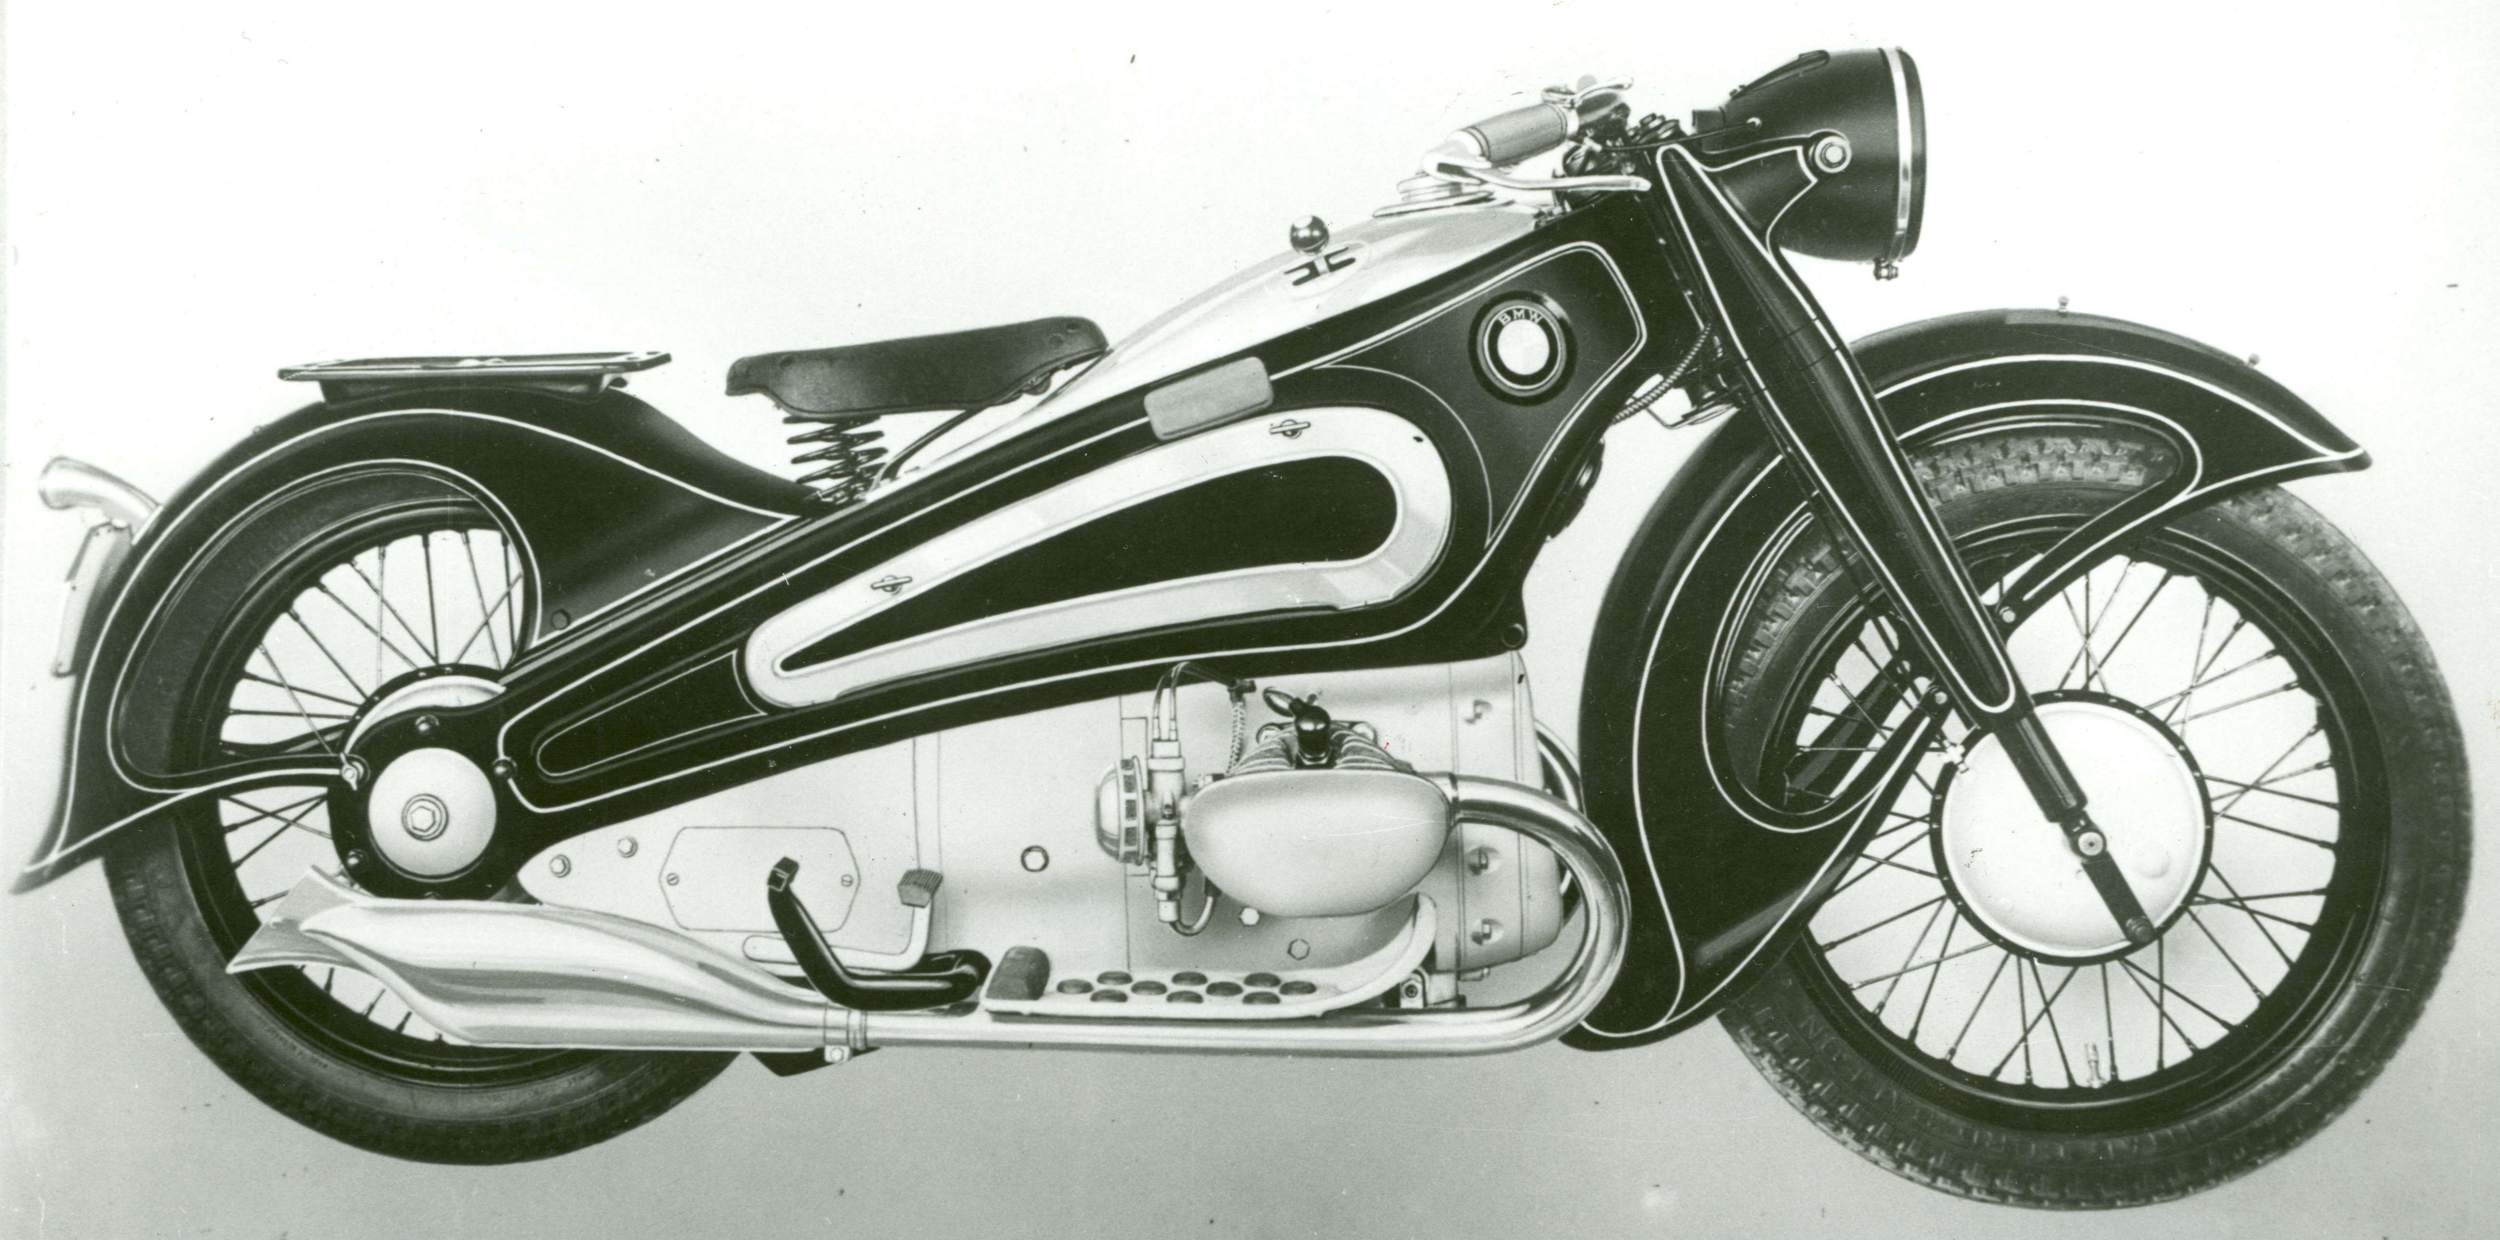 Art Deco Motorcycle 1934 bmw r7 art deco treasureDieselpunk Motorcycle Art